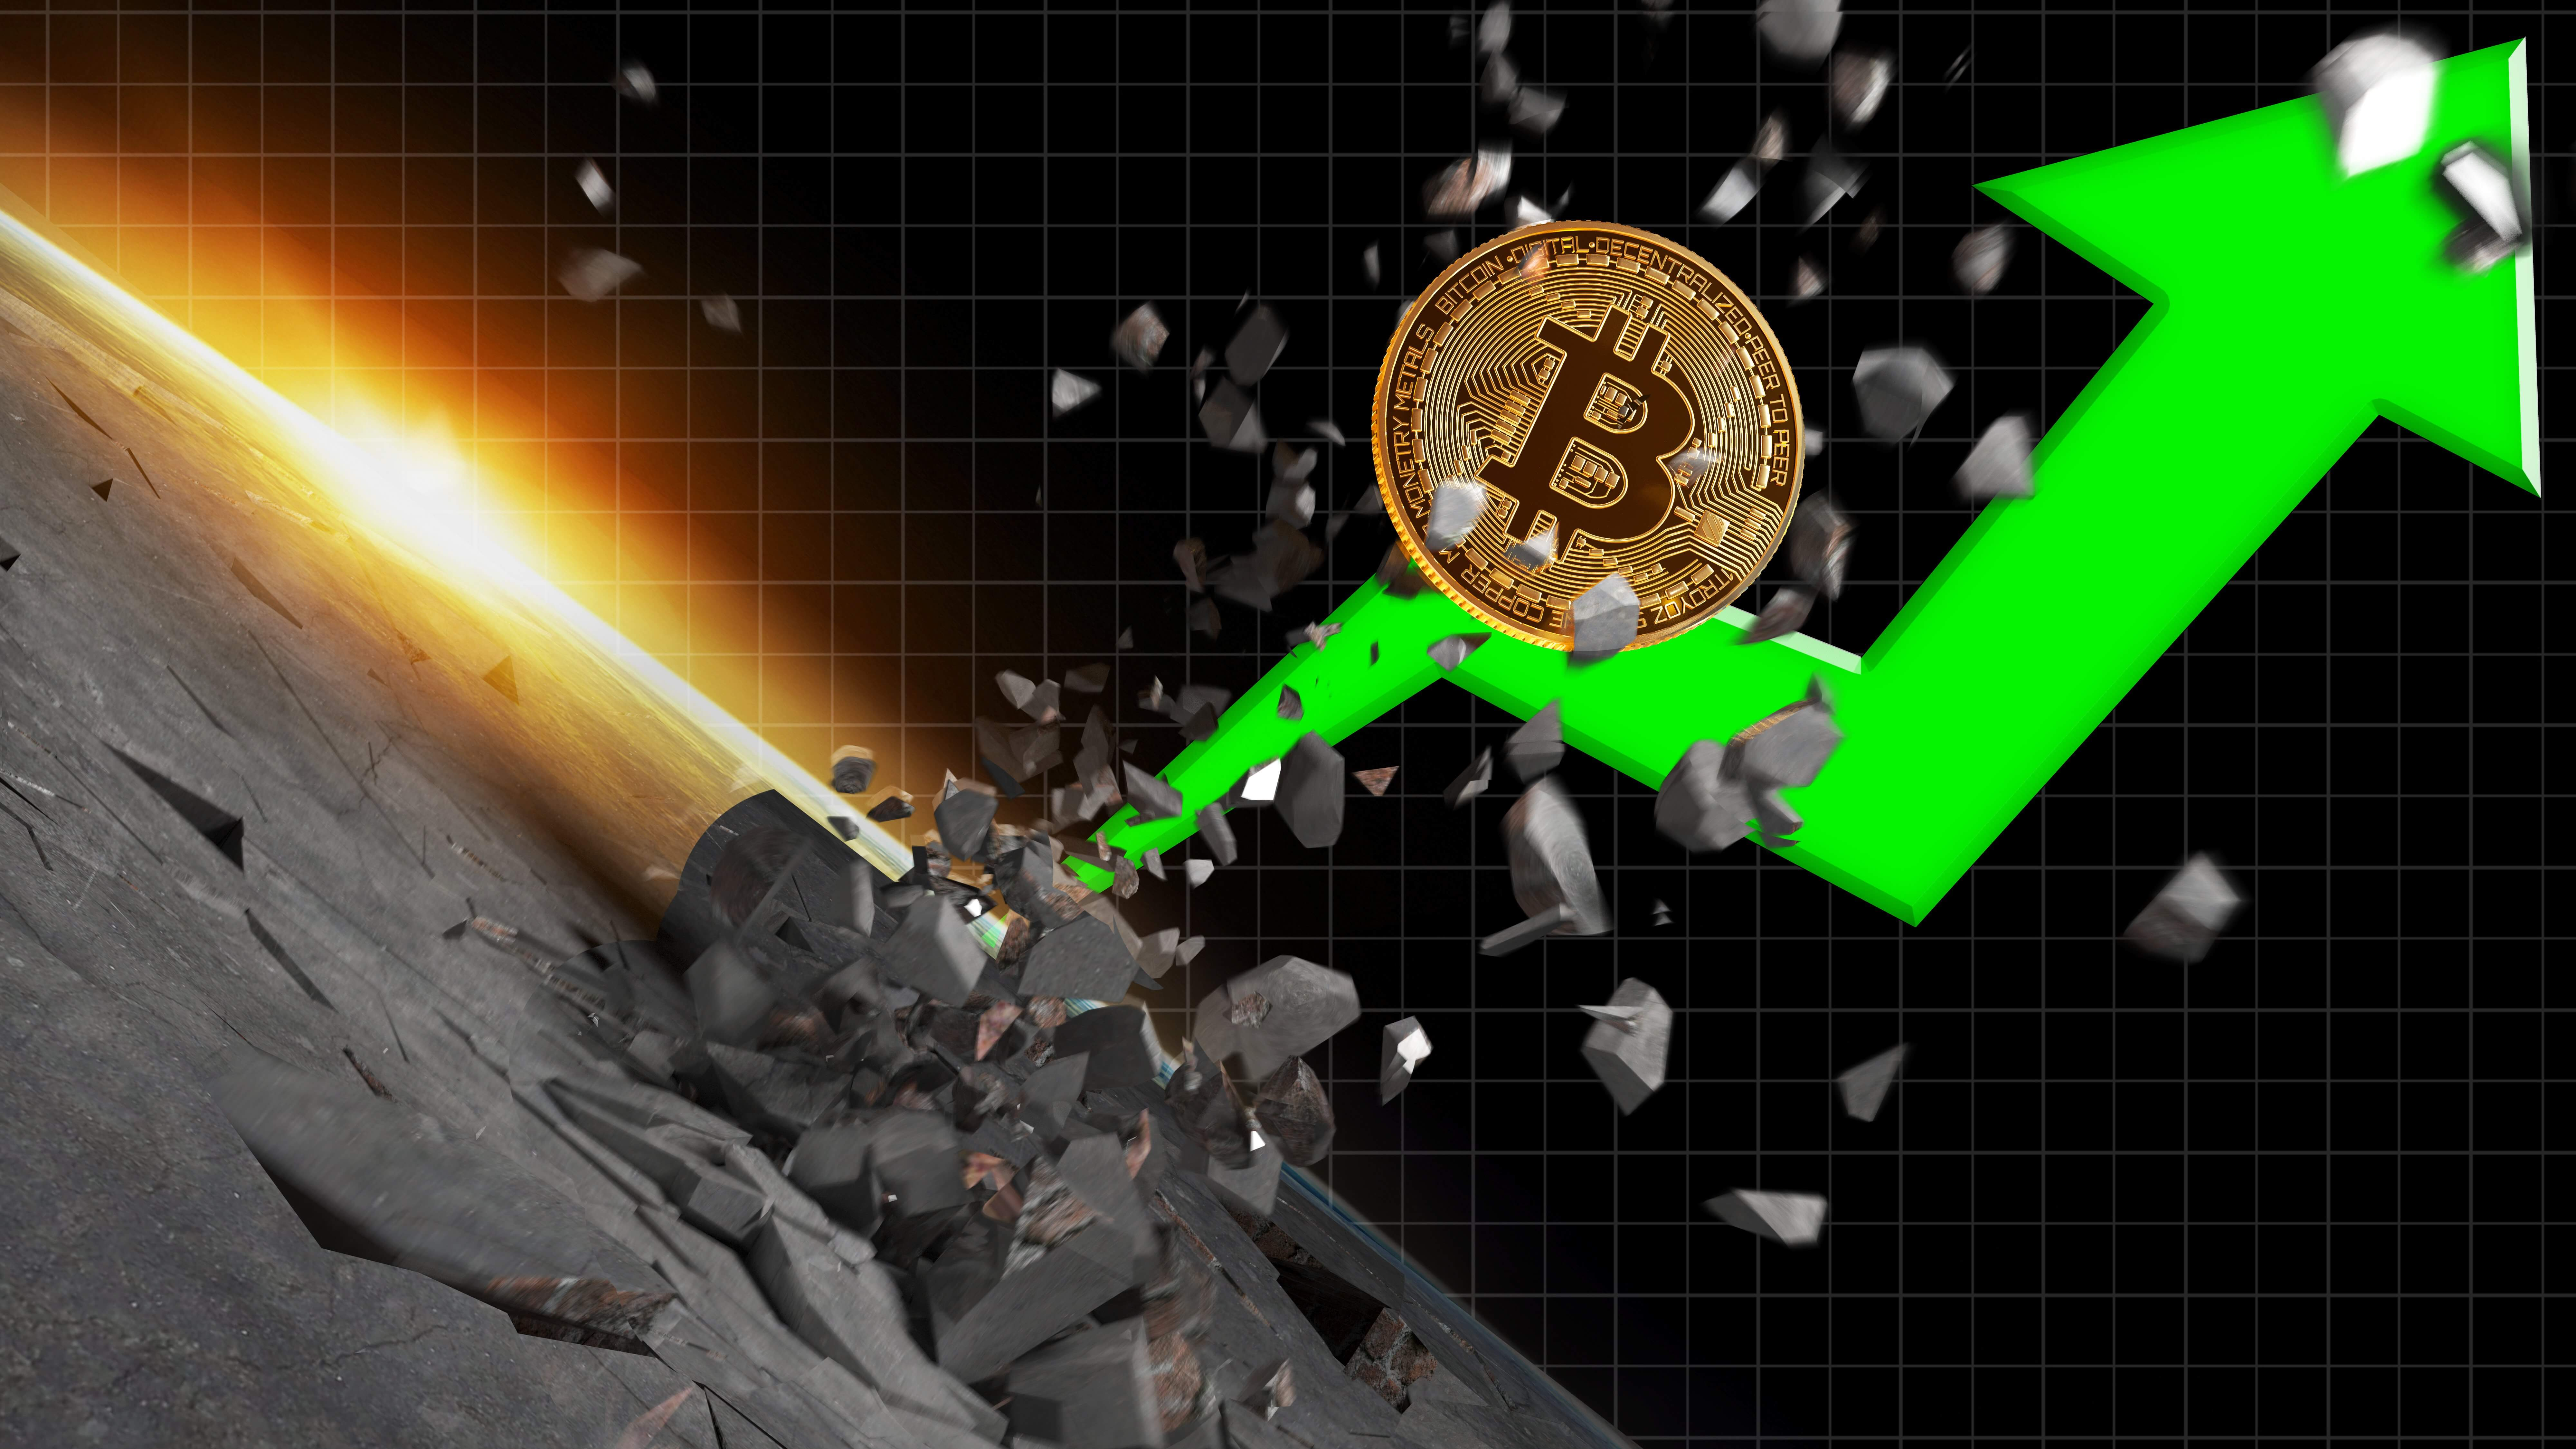 bitcoin price at the highest in 15 months